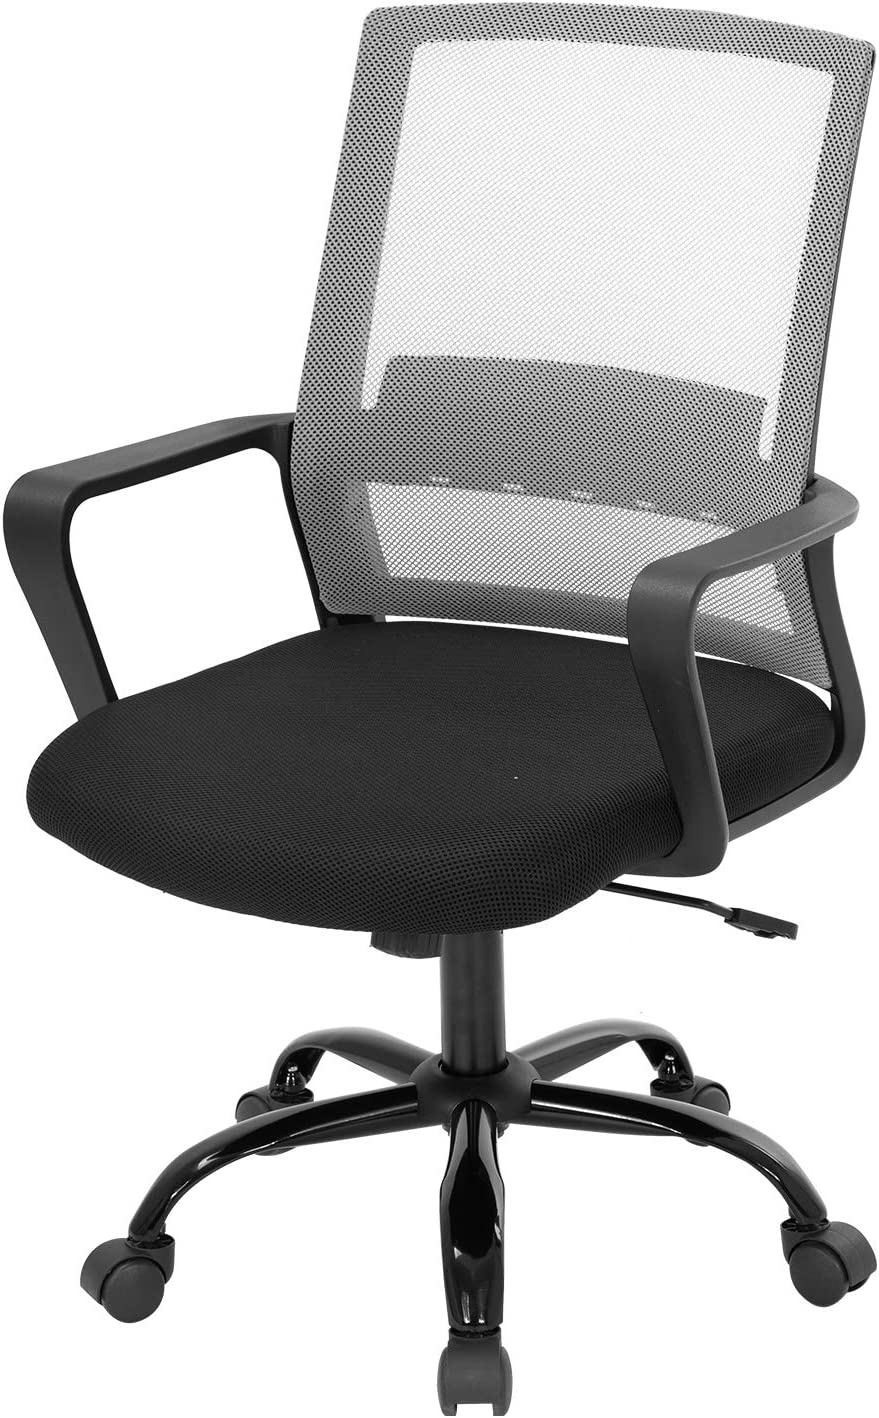 Office Chair Ergonomic Desk Task Chair Mesh Computer Chair Mid-Back Mesh Home Office Swivel Chair Modern Executive Chair with Wheels Armrests Lumbar Support (Grey)